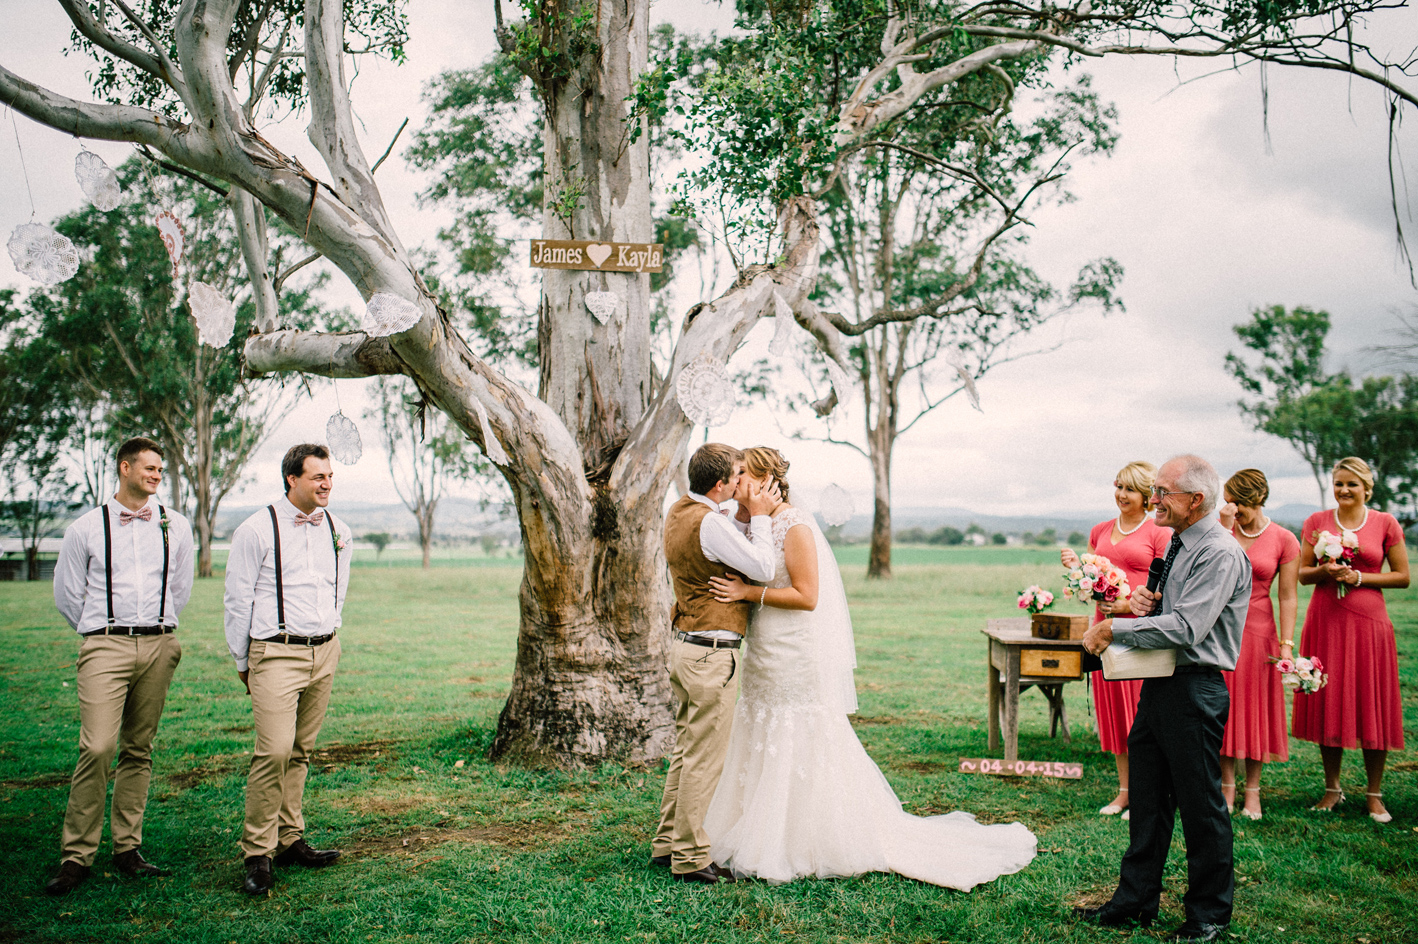 061-kayla-james-beaudesert-wedding-sophie-baker-photography